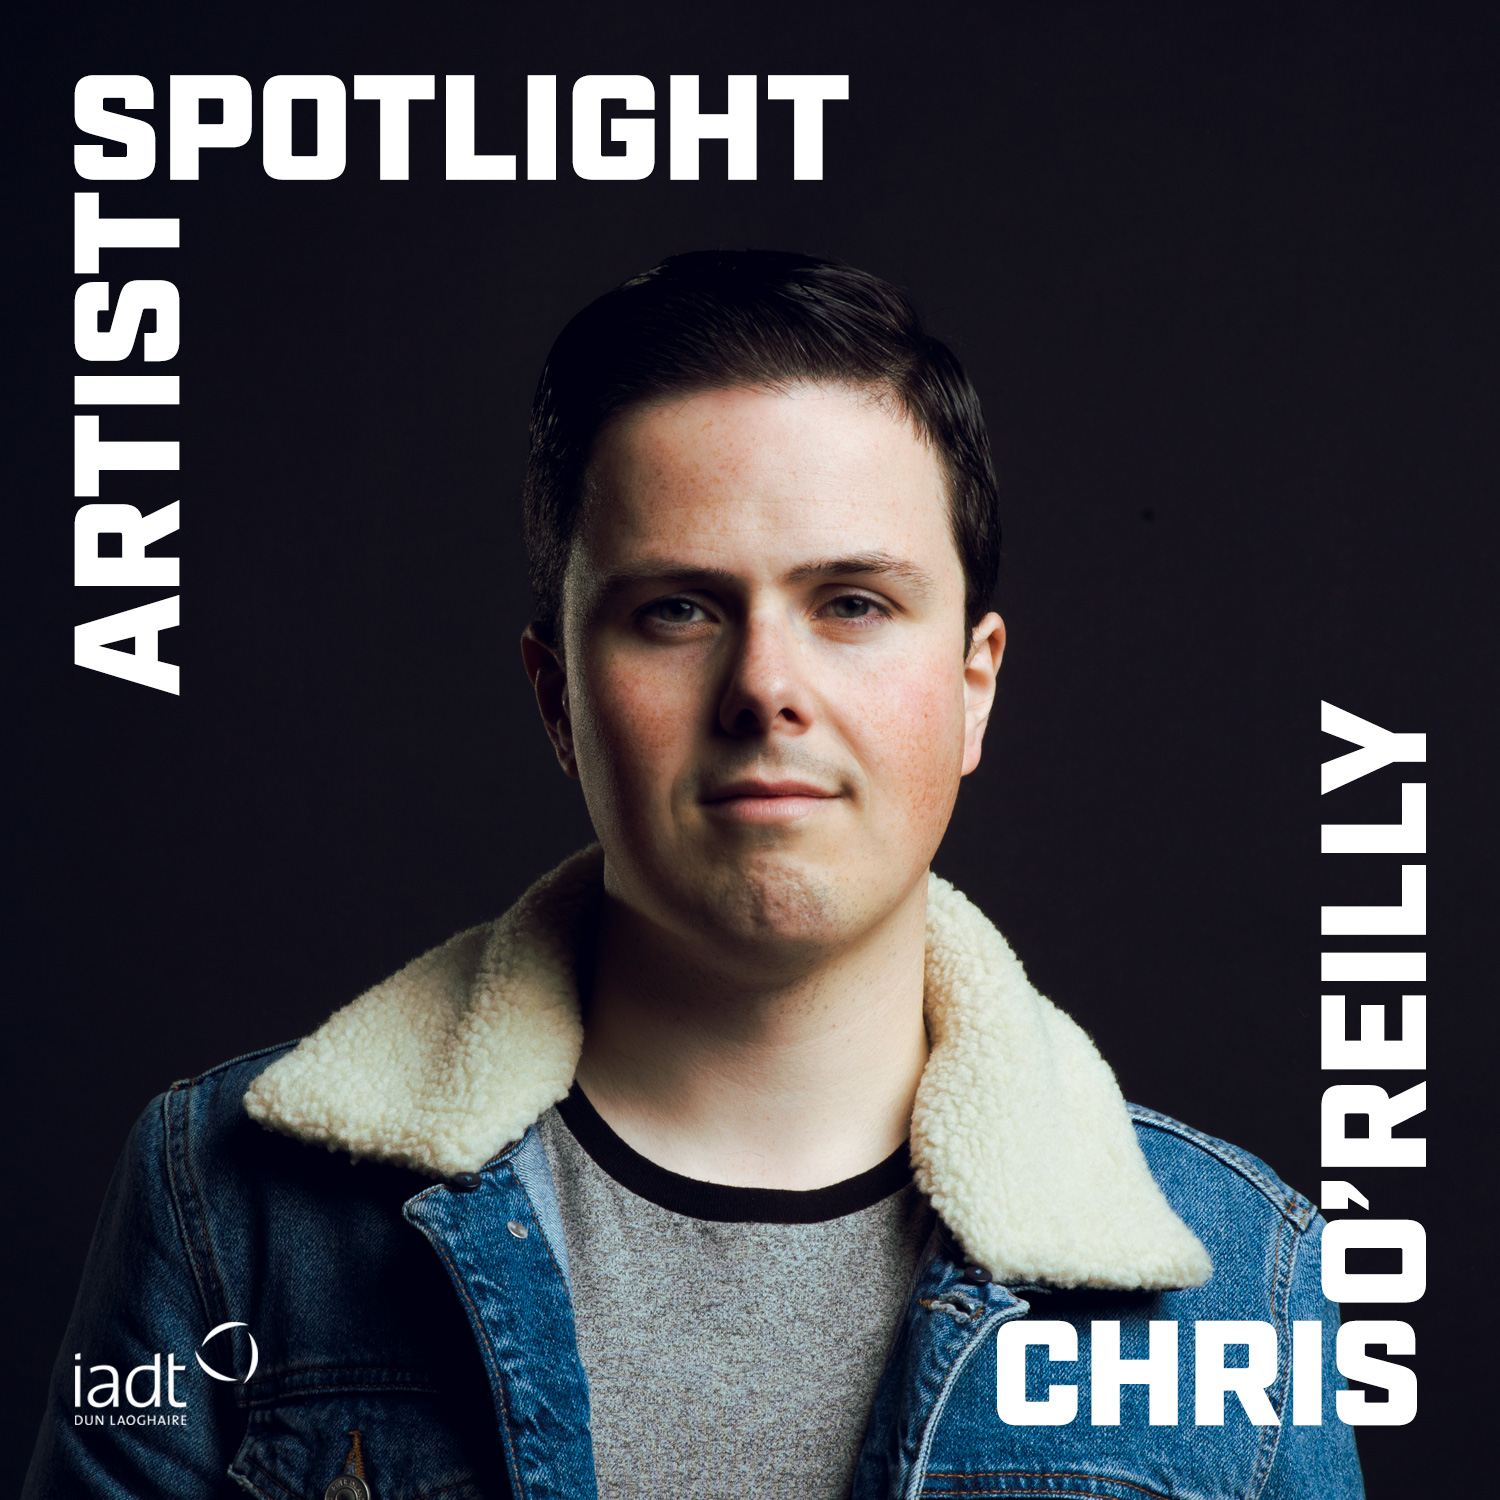 chris-oreilly-artist-spotlight